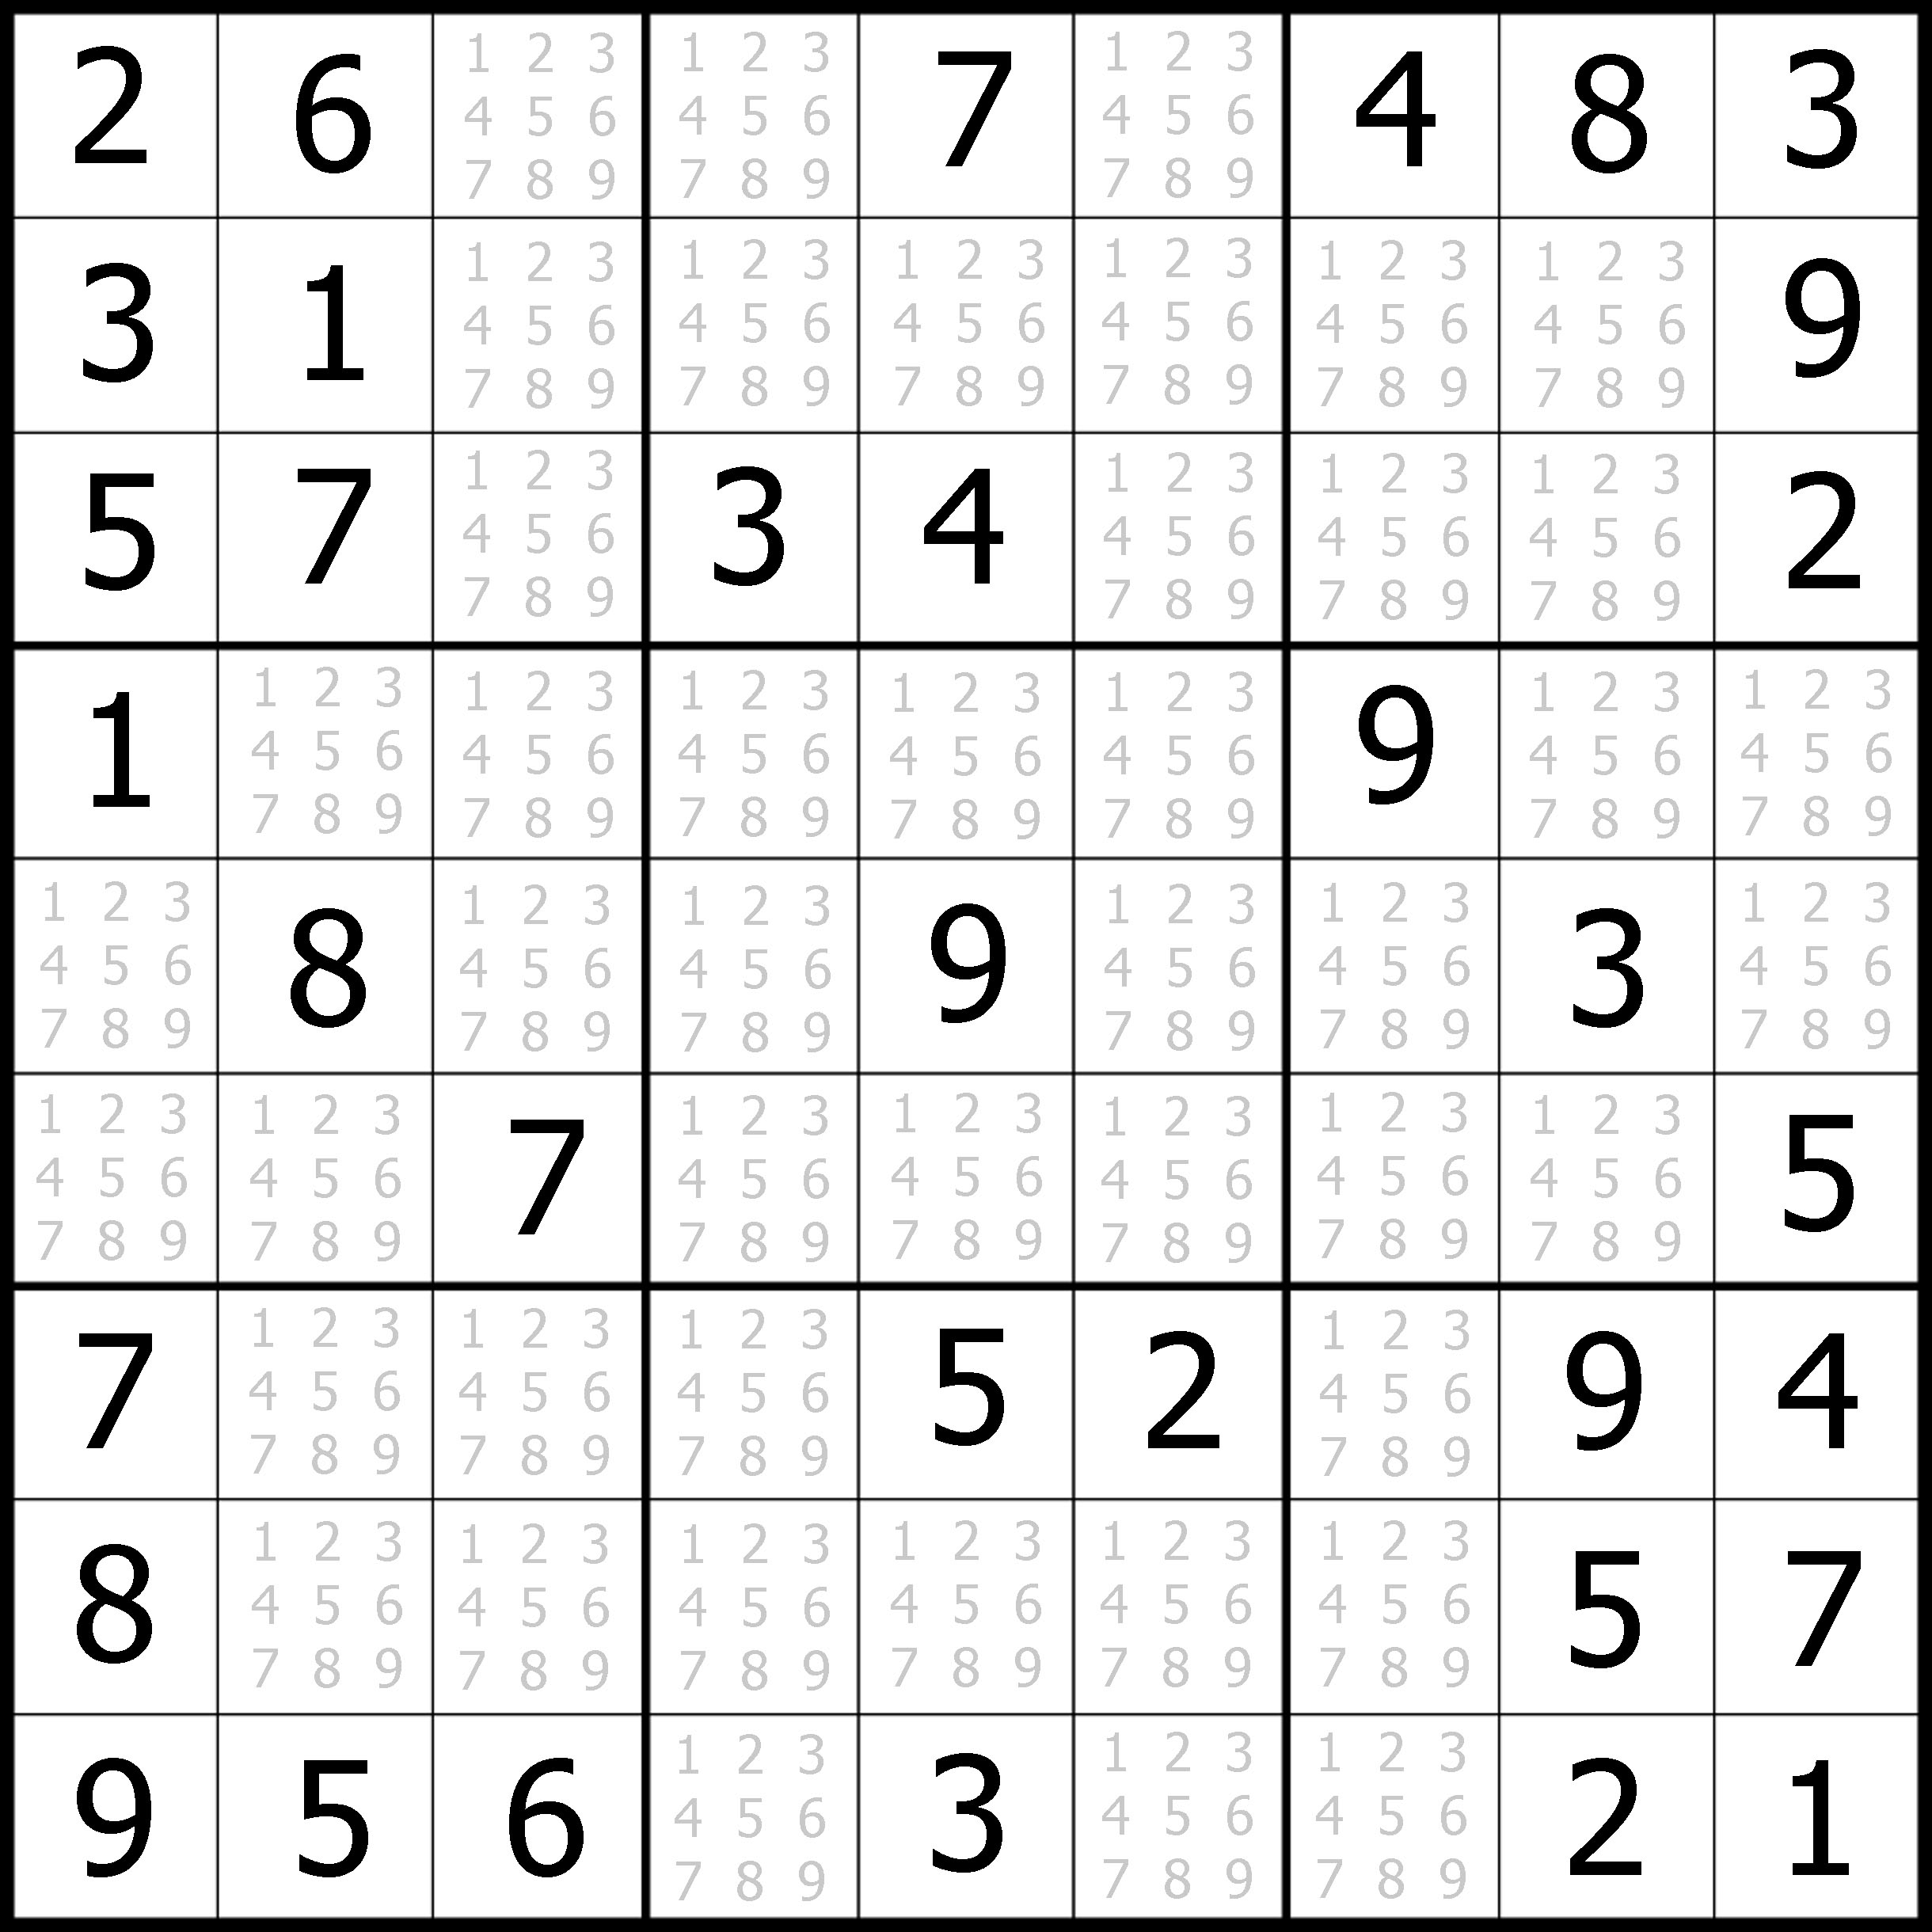 Easy Sudoku Printable | Kids Activities - Printable Sudoku Puzzle Easy